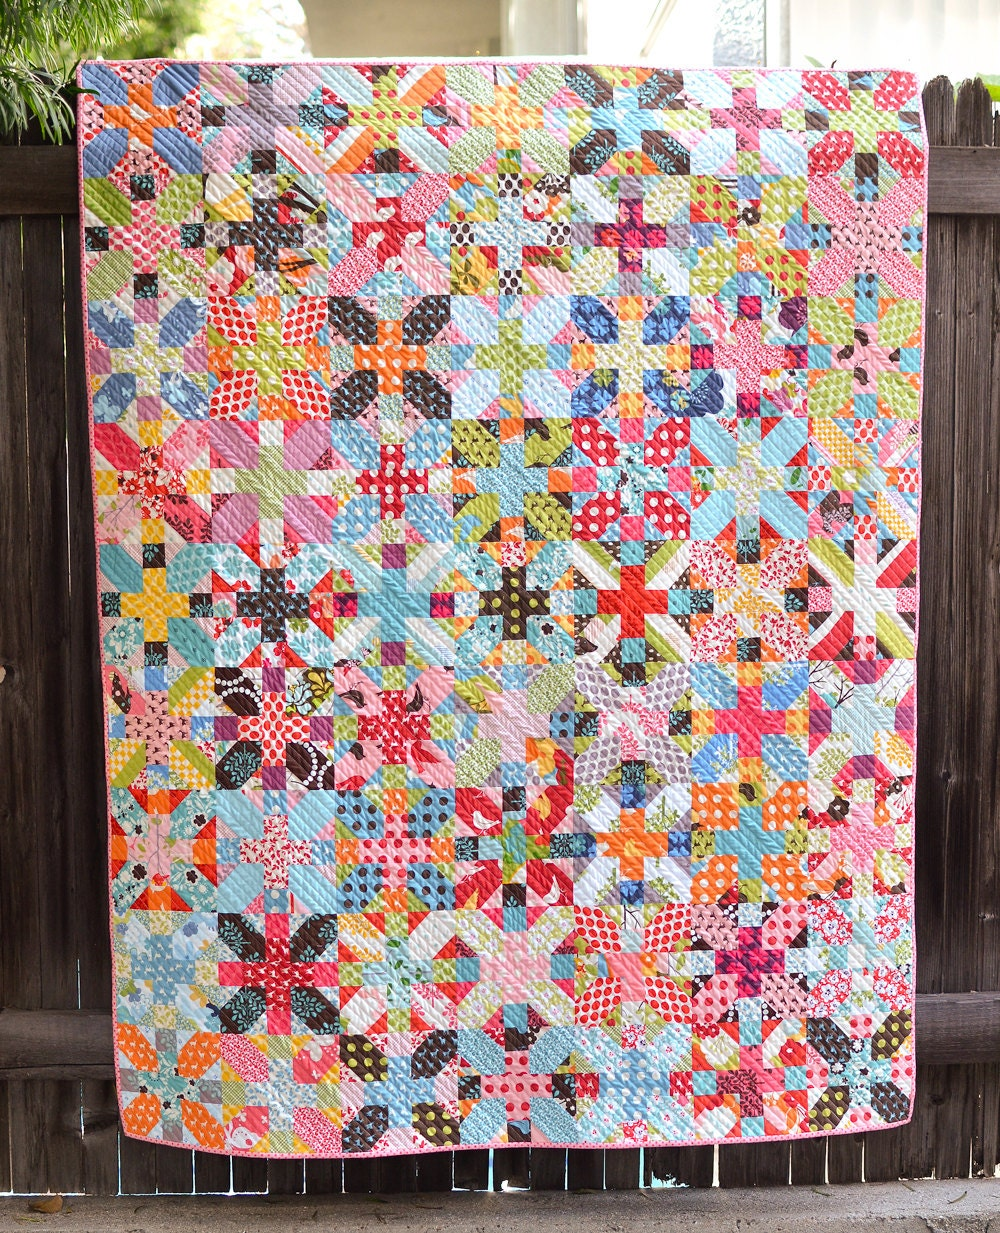 Handmade Lap Quilt - Colorful Patchwork made with Momo's Oh Deer, It's a Hoot, and Just Wing It fabric for Moda, backed with Minky Fabric - ericajackman